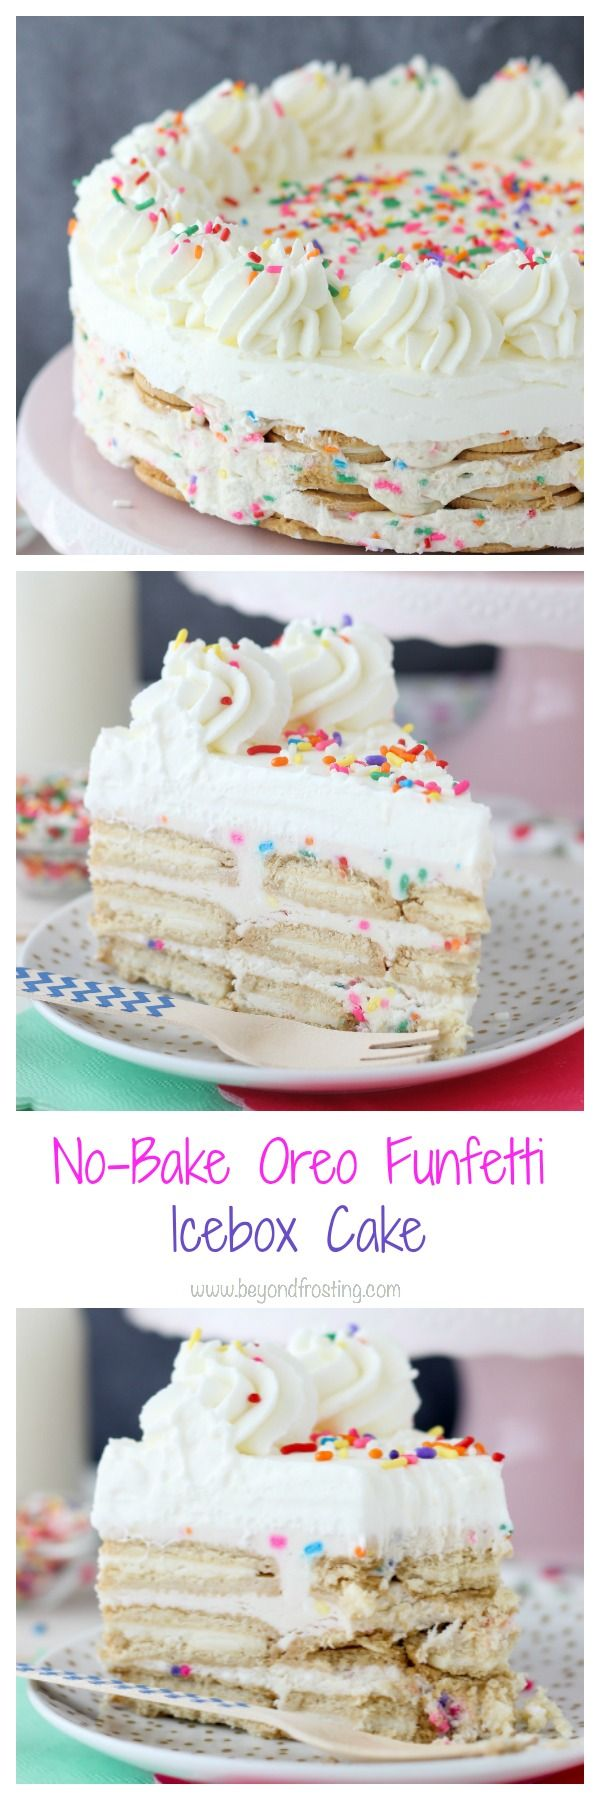 This No-Bake Oreo Funfetti Icebox Cake gives you the ultimate cake batter flavor but without all the work. Layers of Golden Oreos, funfetti mousse and whipped cream. This easy to follow recipe is a keeper!